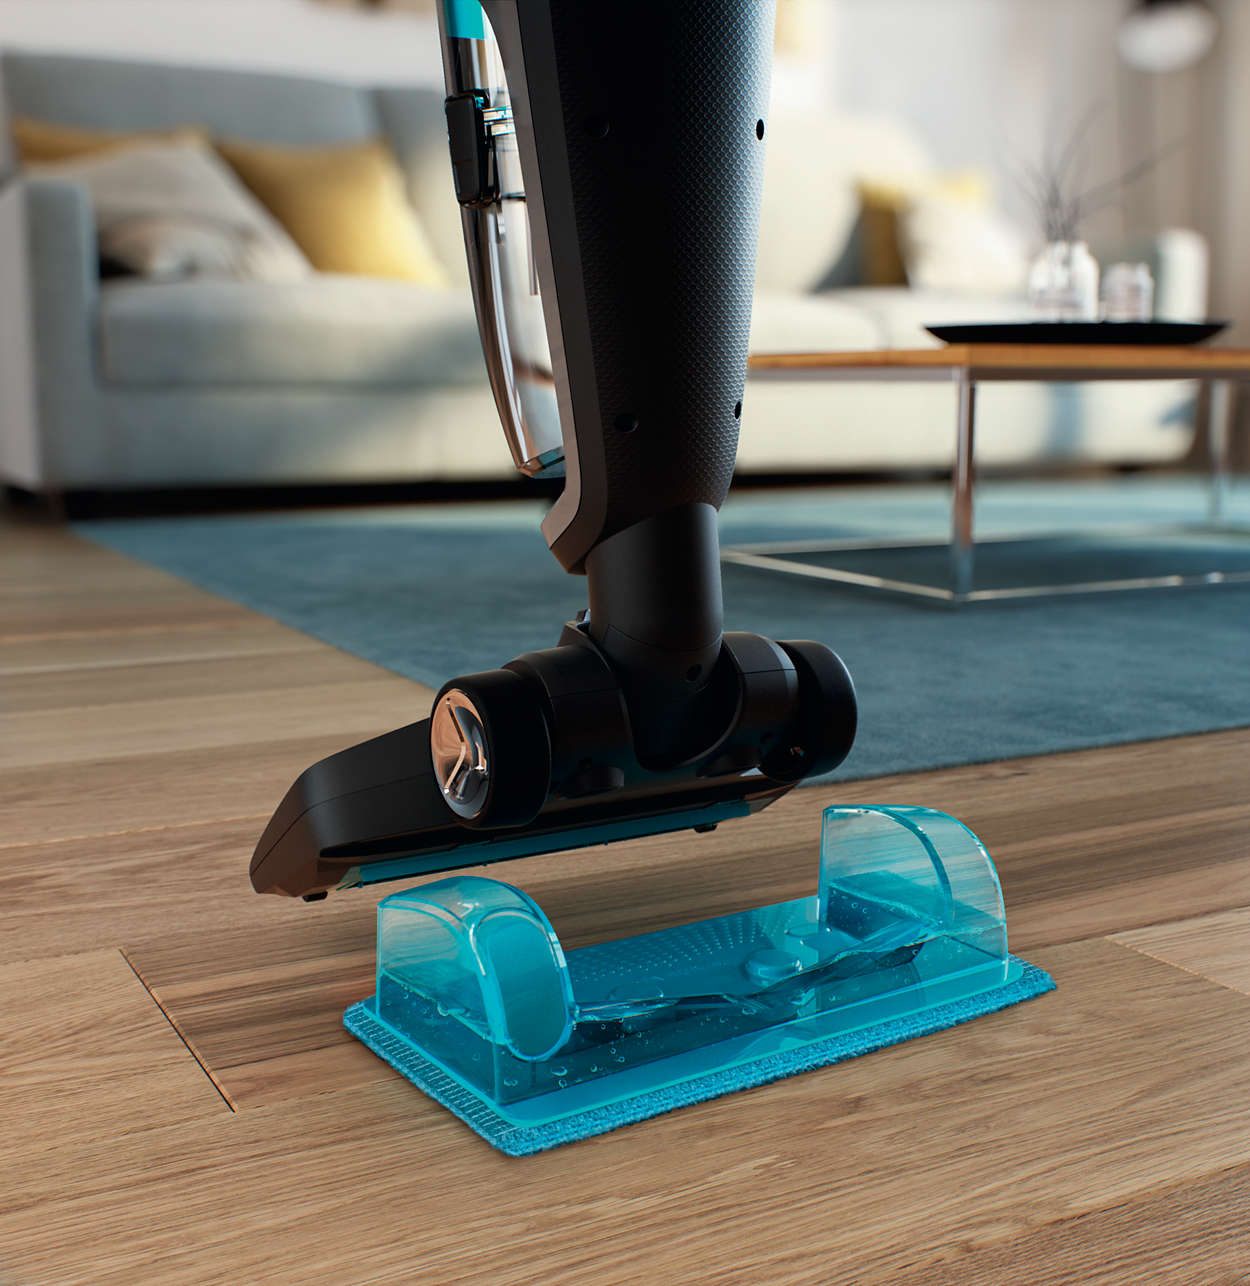 Philips Powerpro Aqua Stick Vacuum Cleaner Upright